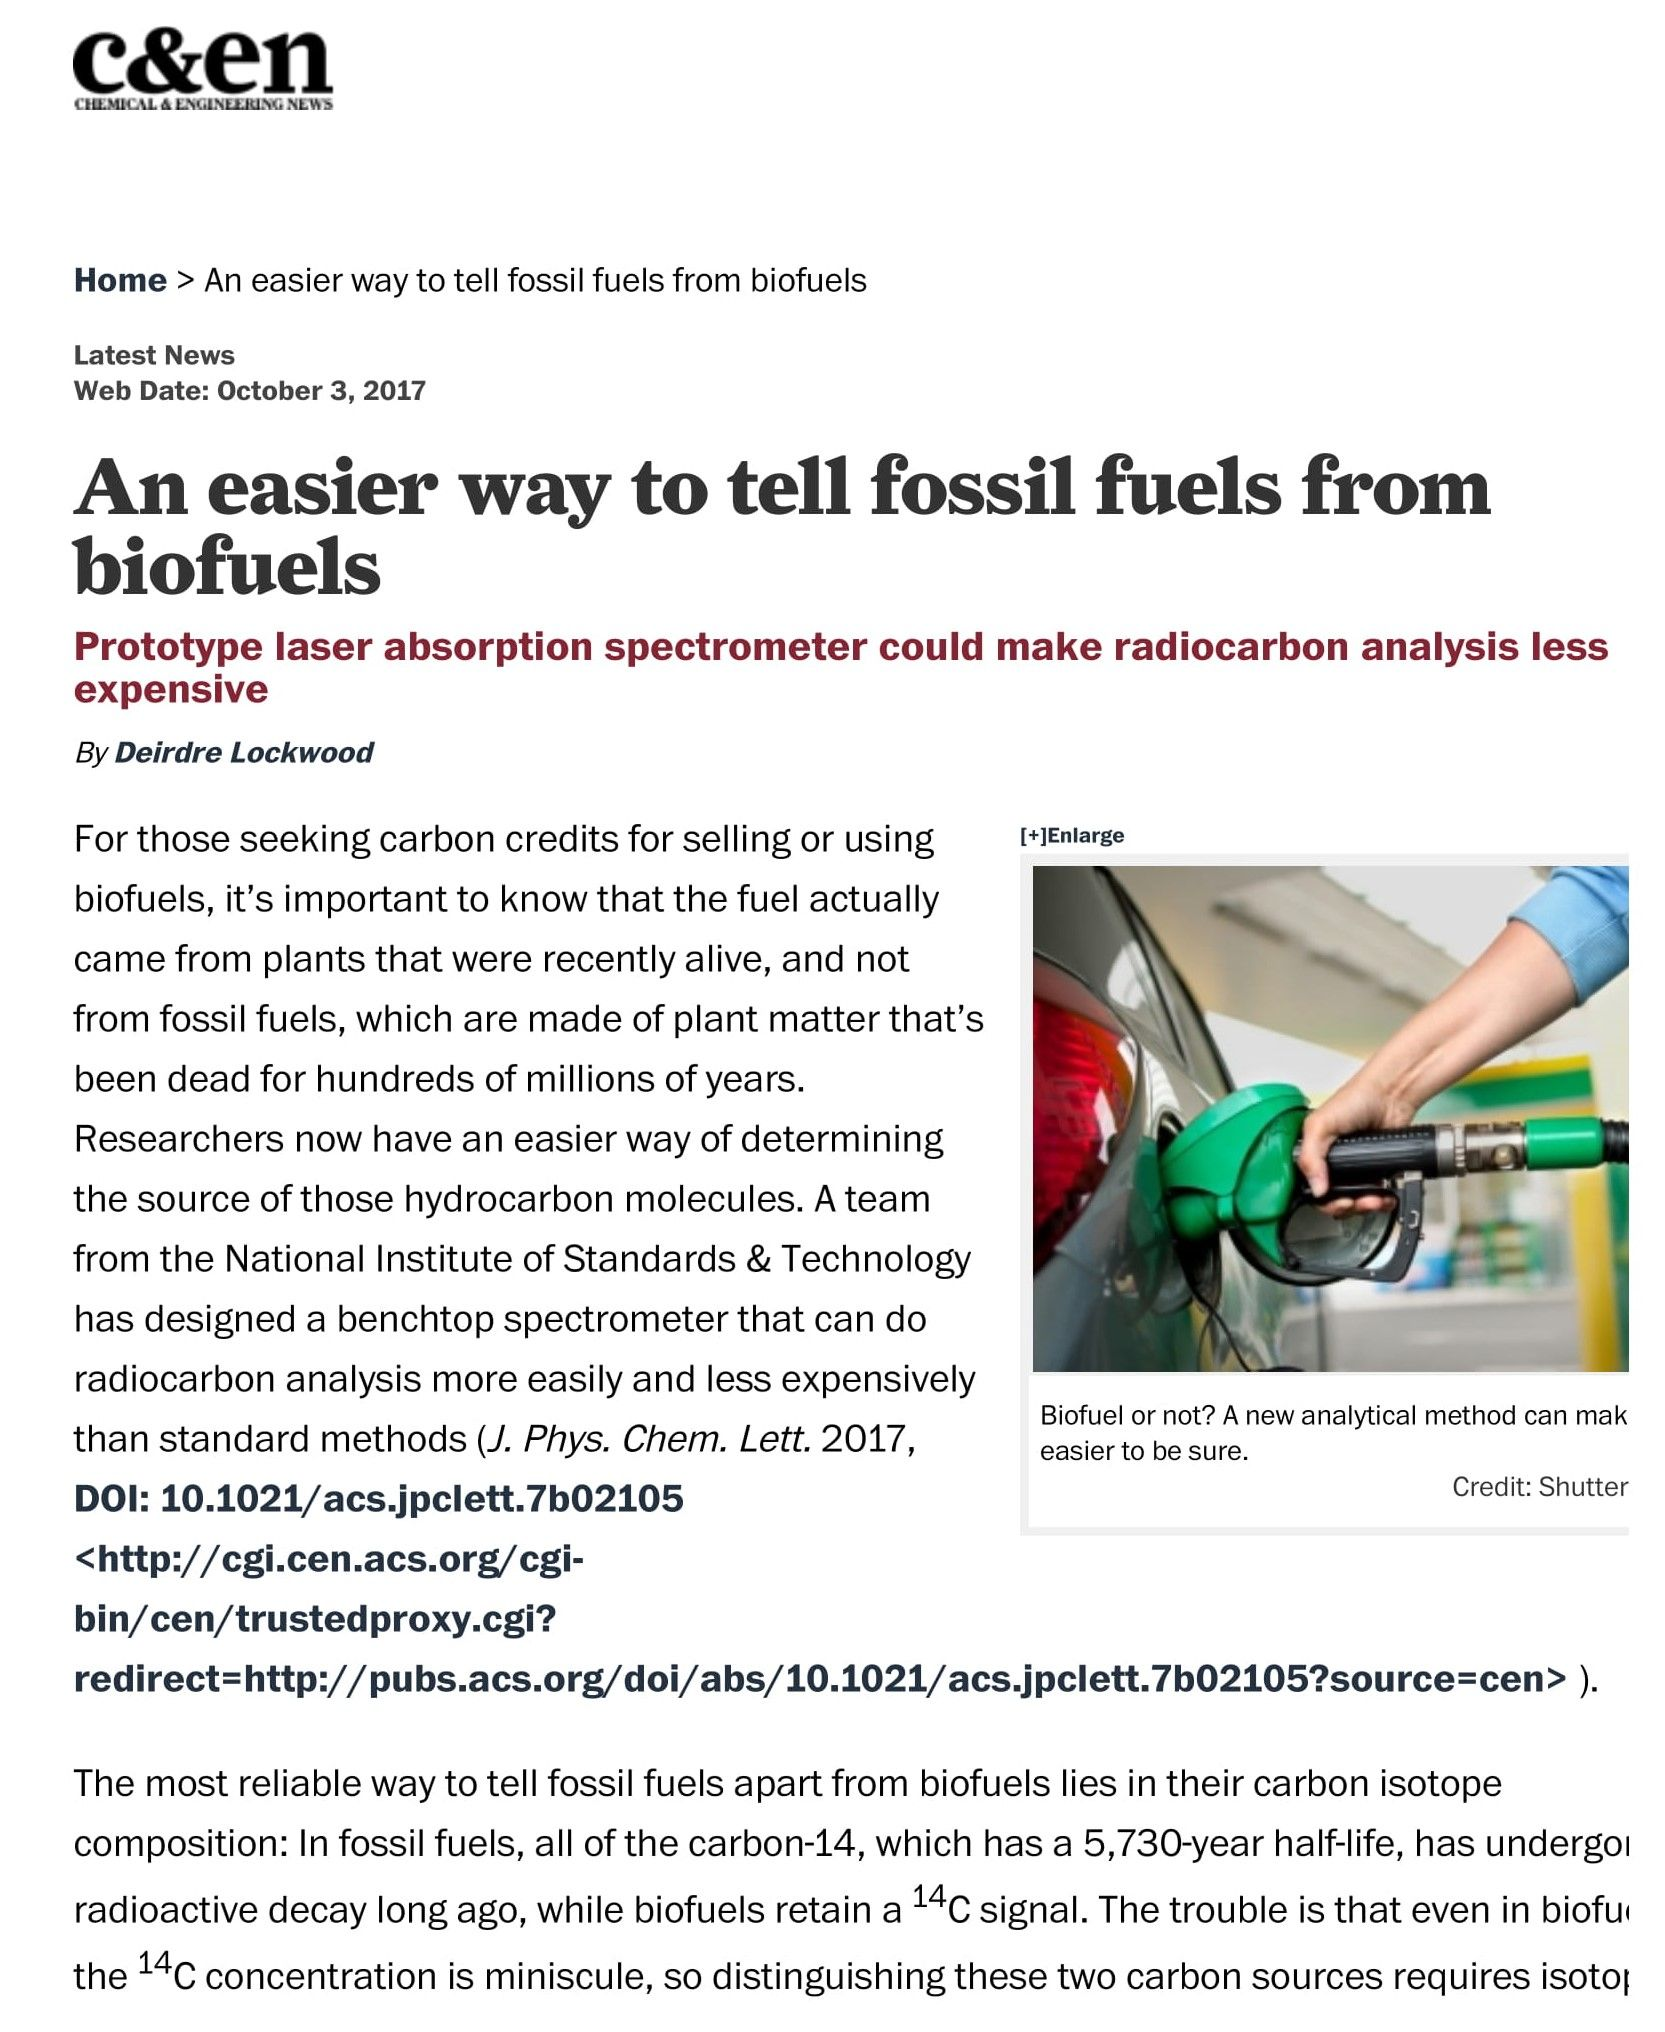 c&en--An easier way to tell fossil fuels from biofuels